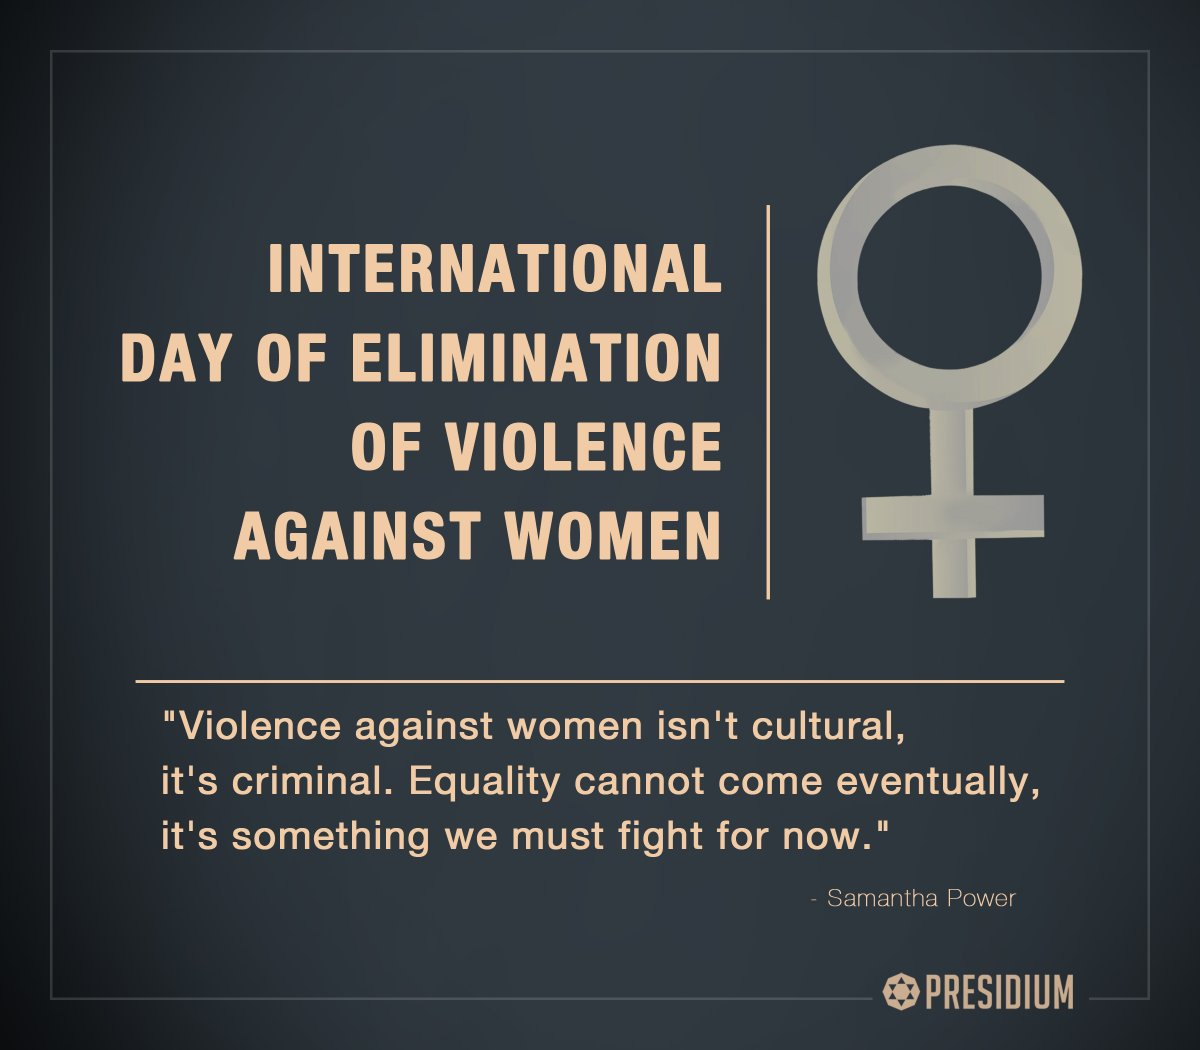 THE PRESIDIUM FAMILY PROUDLY SAYS NO TO VIOLENCE AGAINST WOMEN